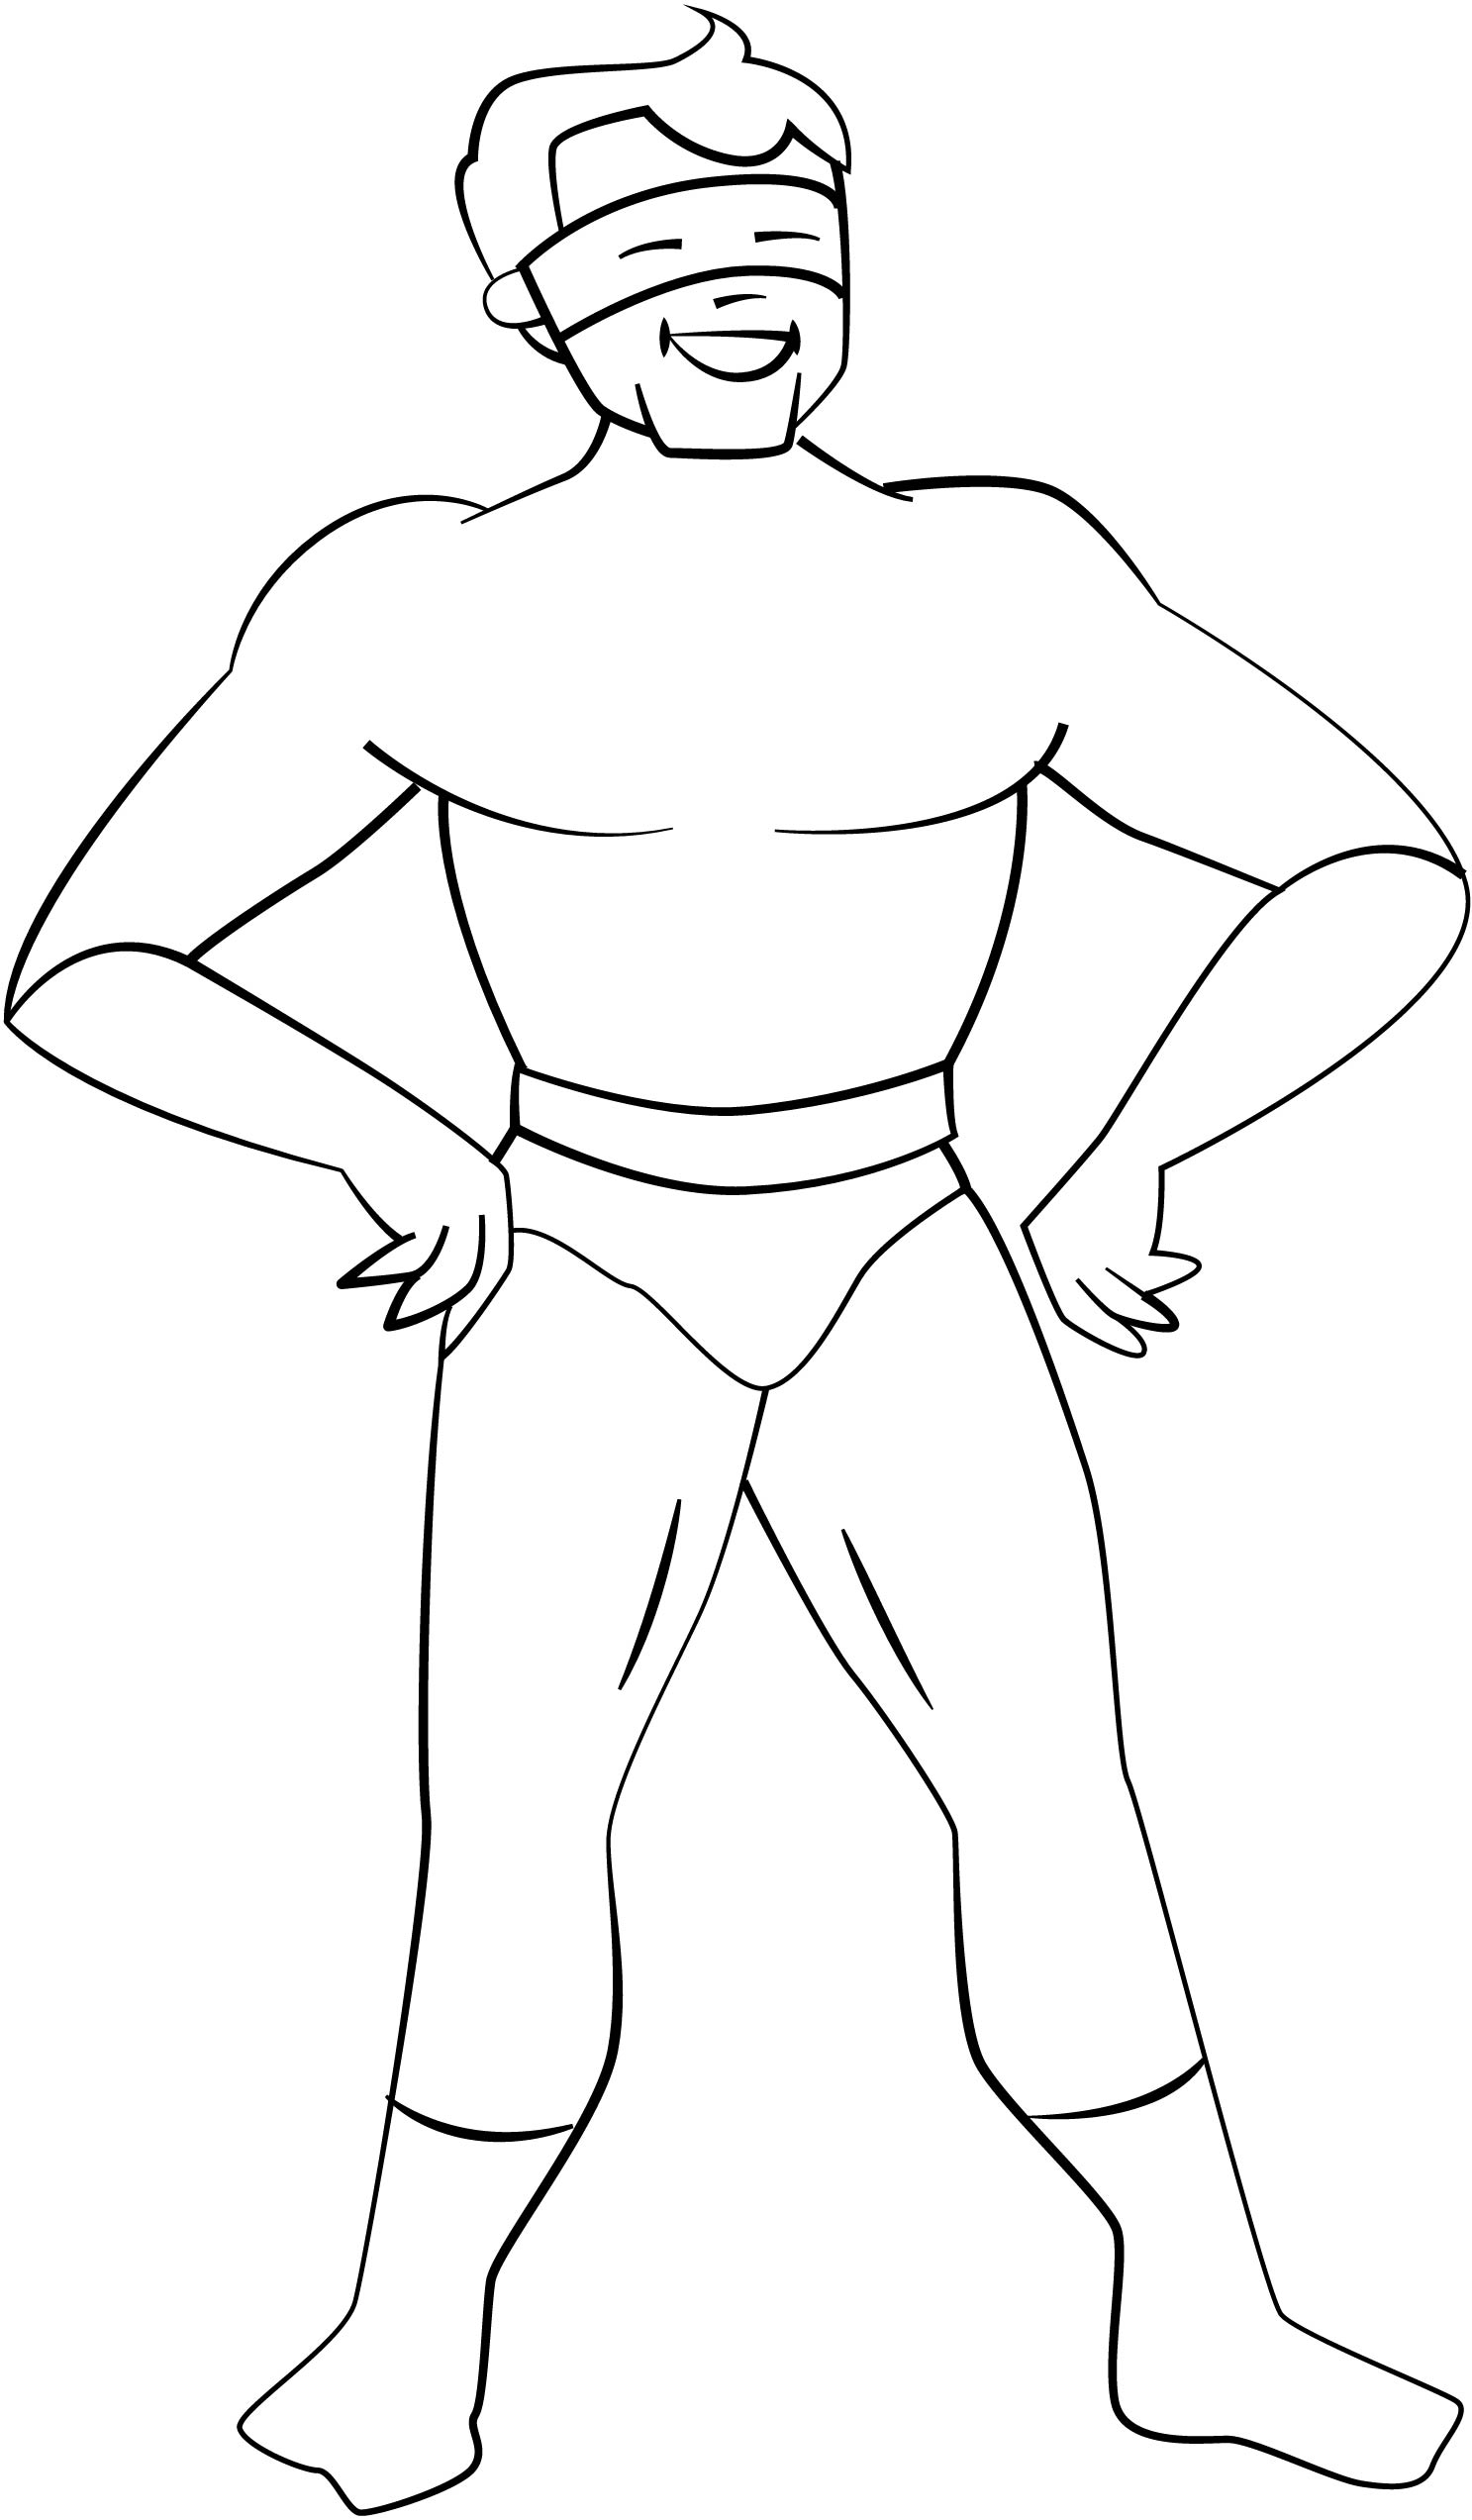 Action Man Heroes Coloring Page 02